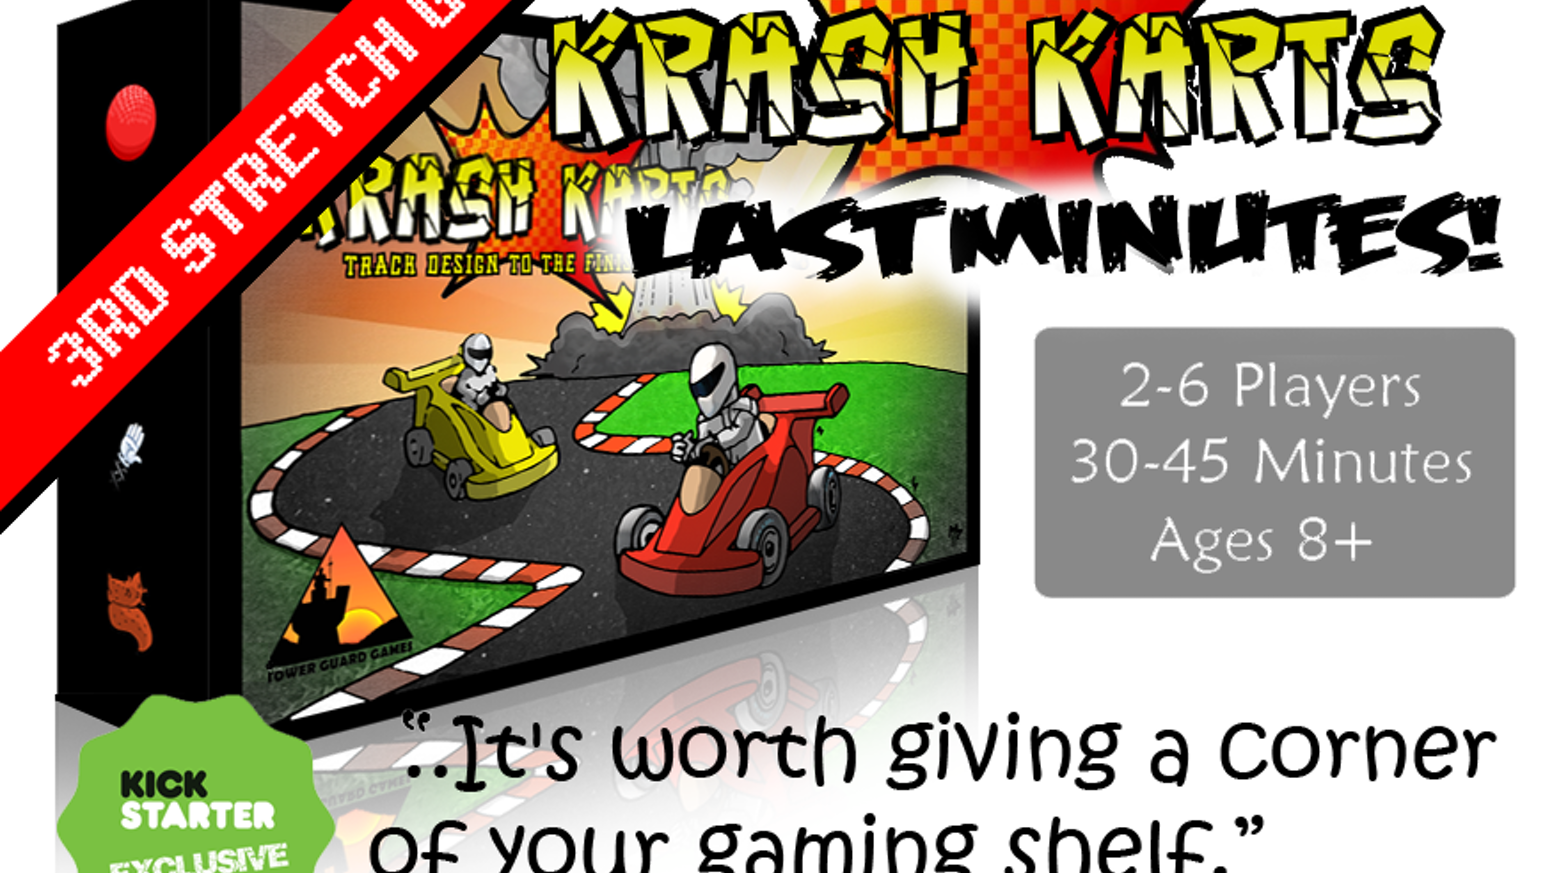 Track design to the finish line! Krash Karts is a chaotic combat racing game where you also build the track while you're racing it!